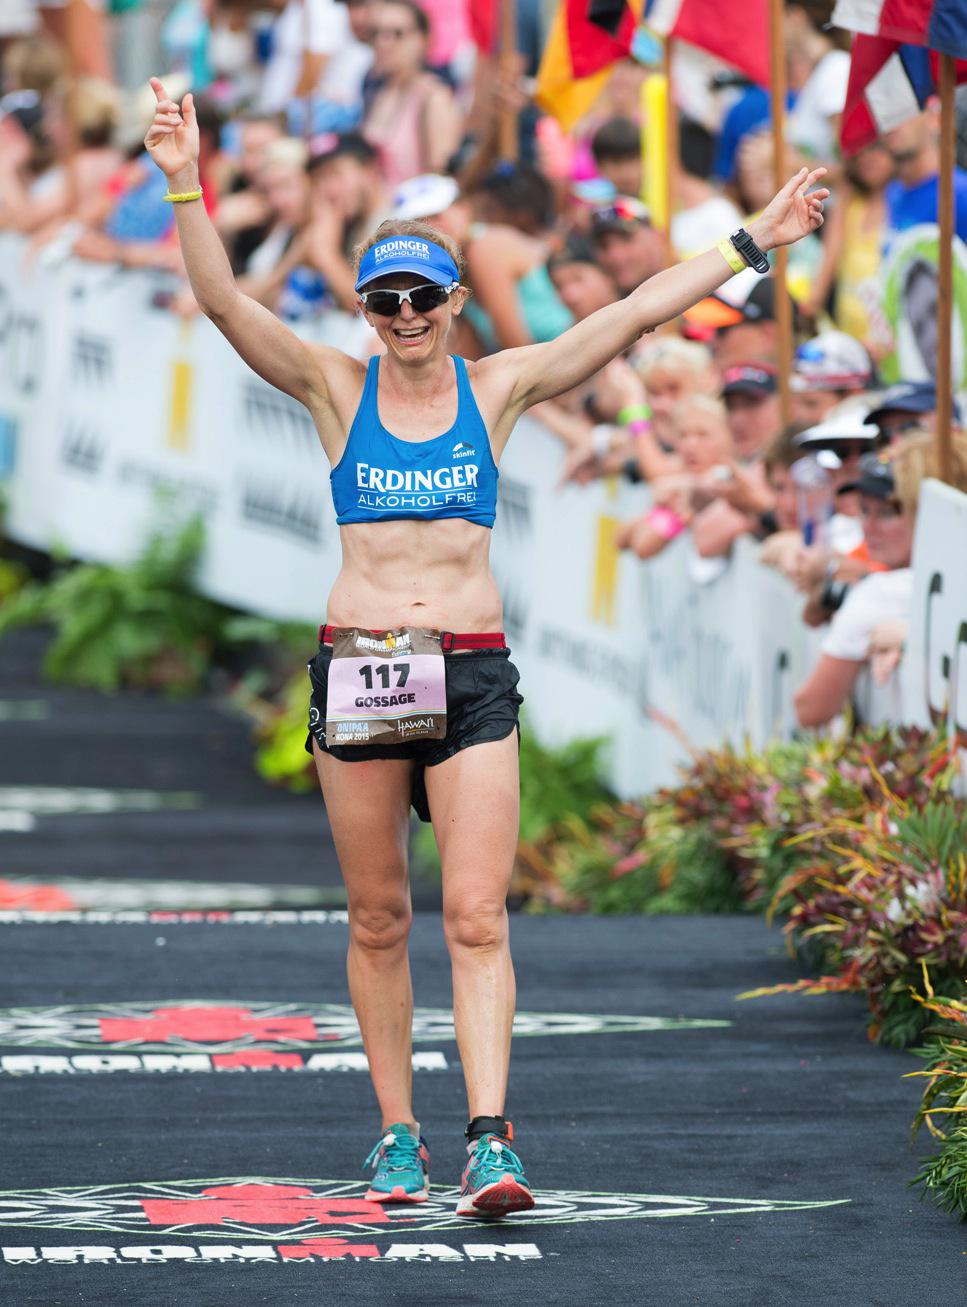 Lucy Gossage competing at the Ironman World Championships in Kona